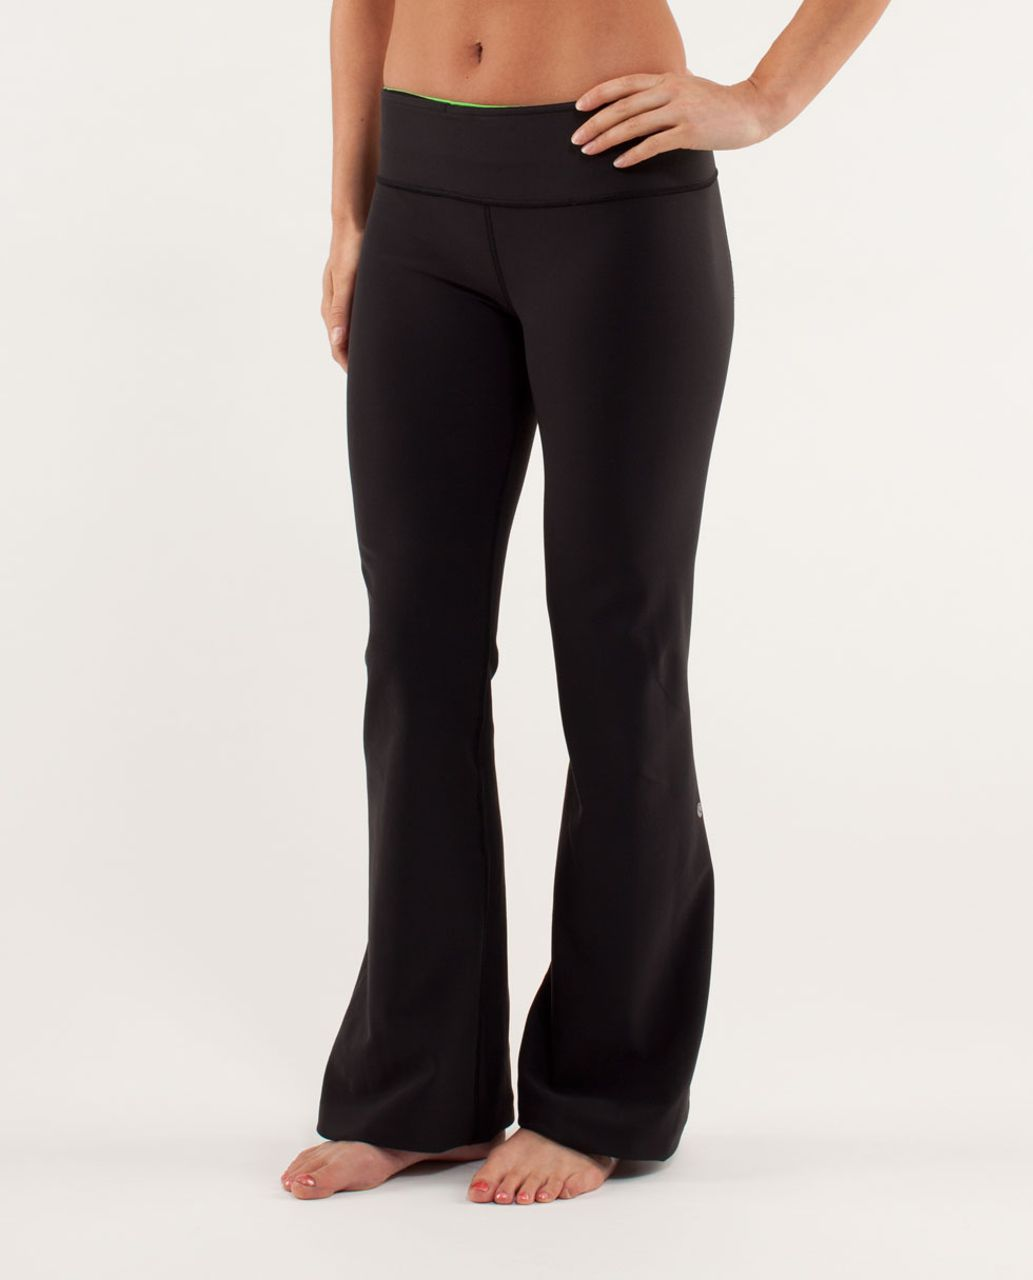 Lululemon Groove Pant *New (Regular) - Black / Frond / Faded Zap